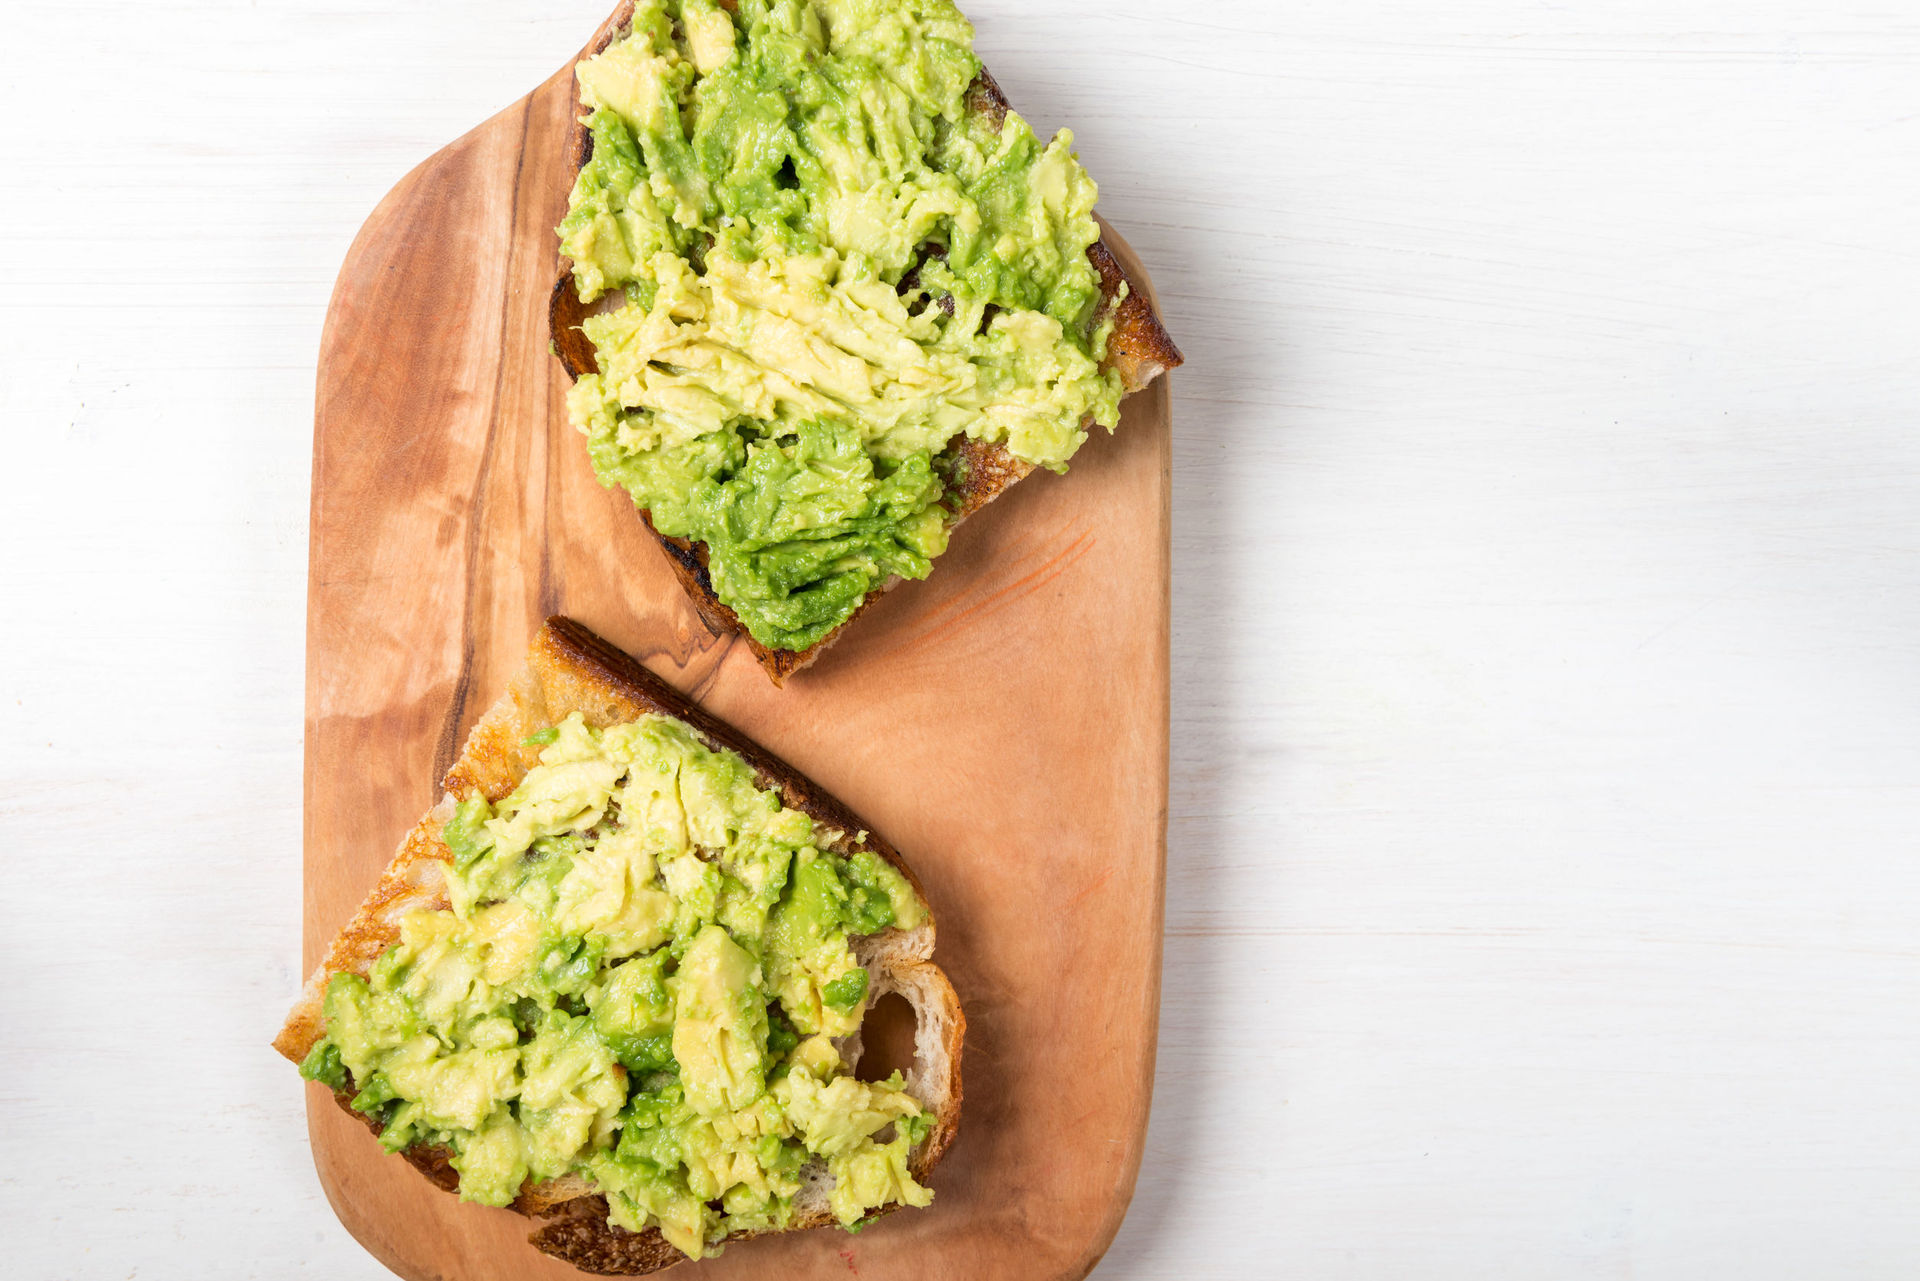 Eating avocado has many health benefits, but not if you eat it on toast warn researchers